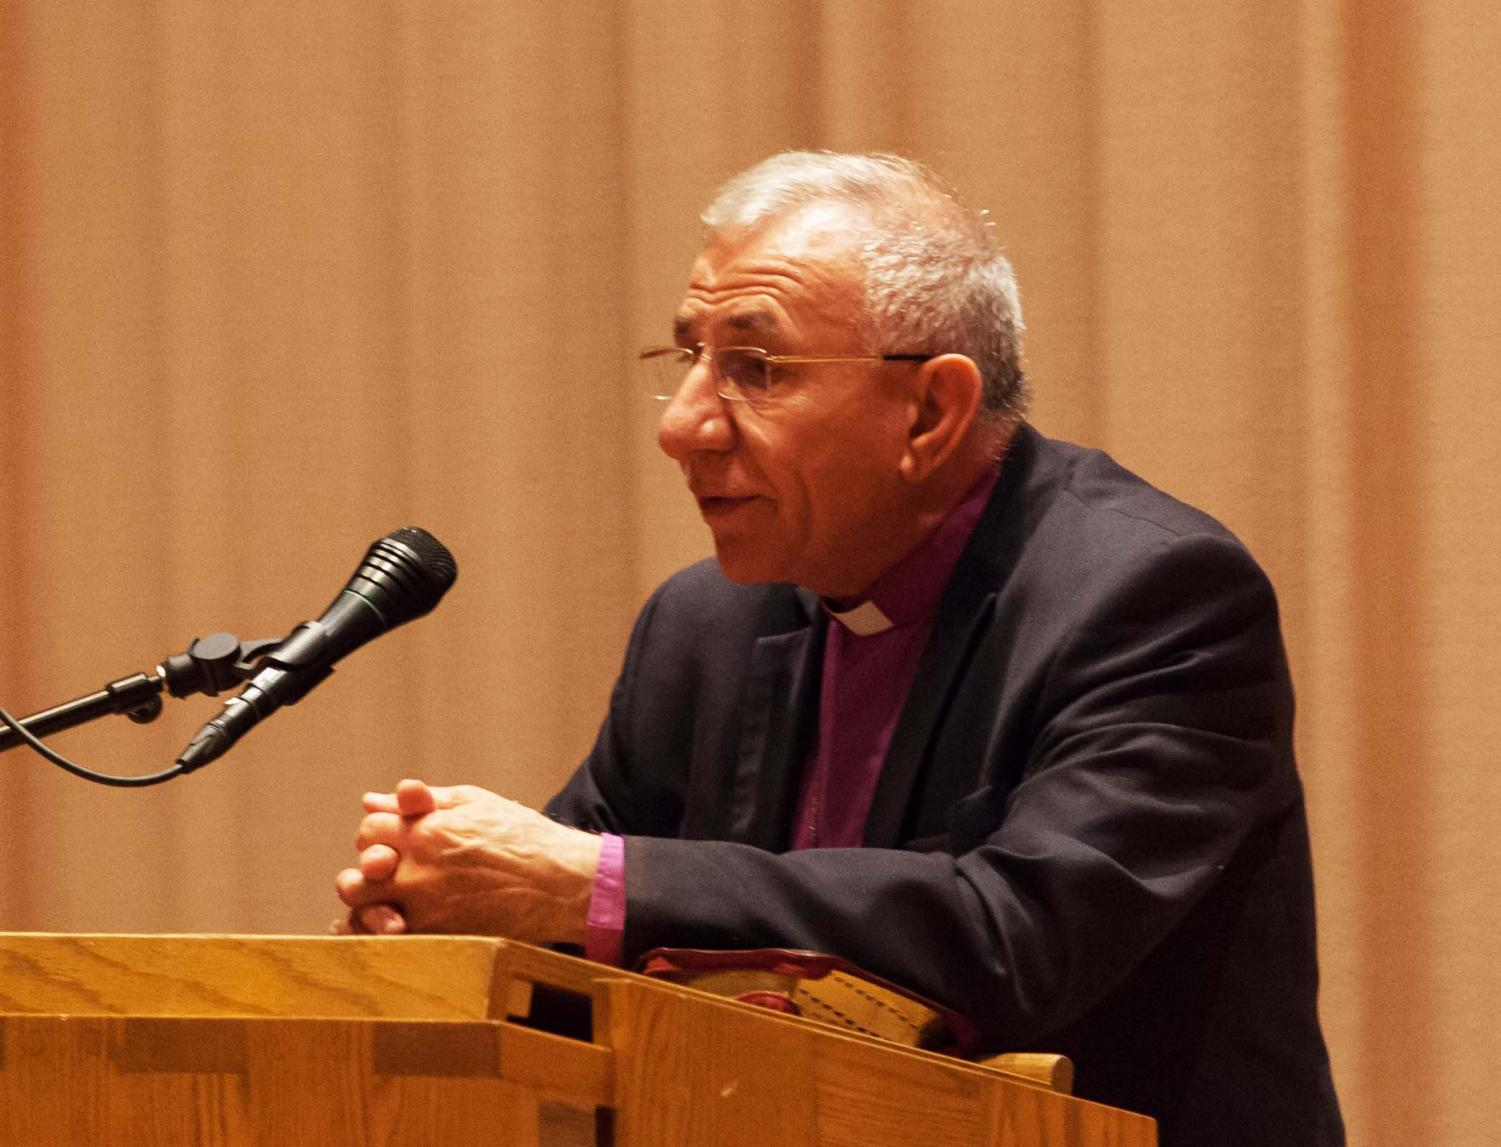 Bishop Emeritus Younan gives a lecture on peacemaking in the CFL Recital Hall on Sept. 26.